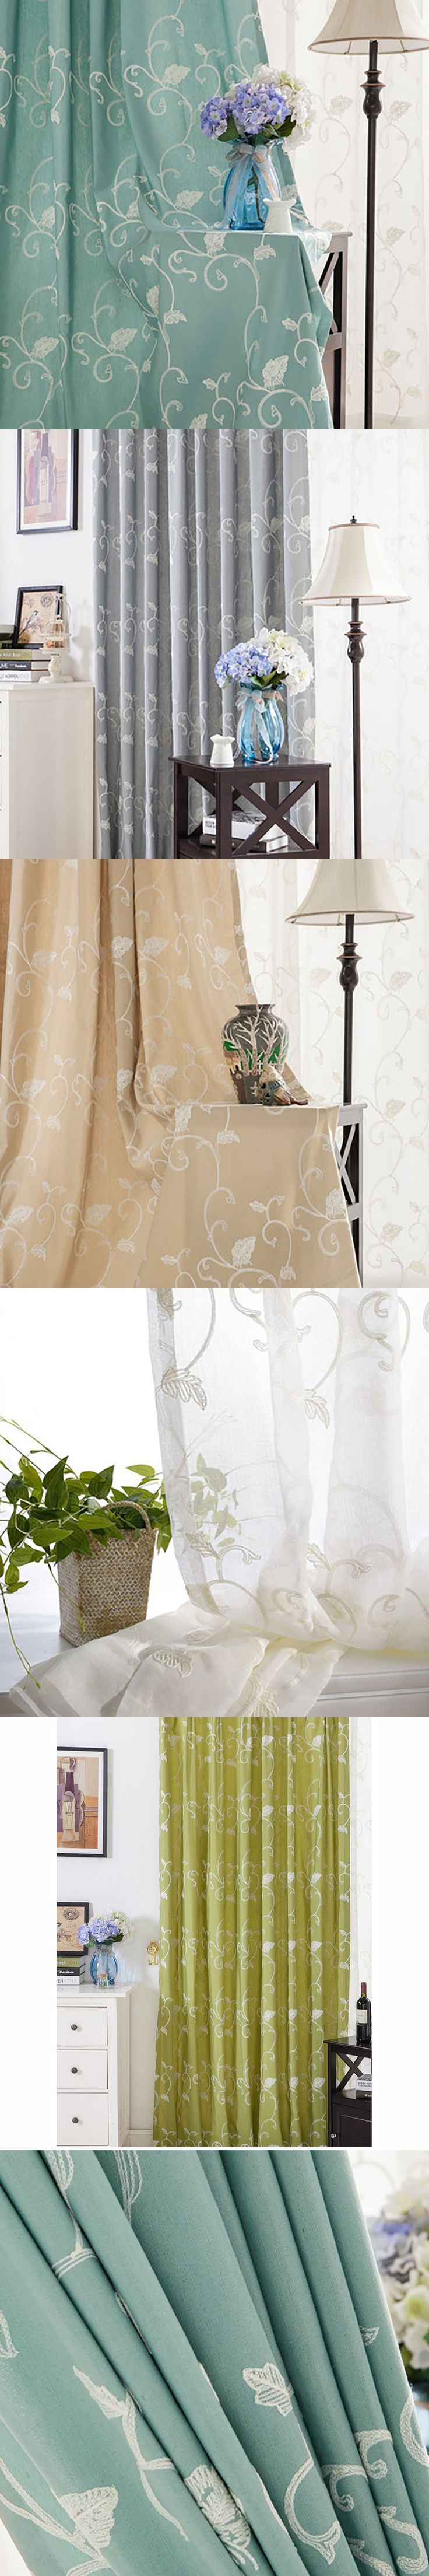 Blackout Cloth Screen Window Linen Curtains Tulle Butterflies String Luxury Curtains For Living Room DDLXY5 $12